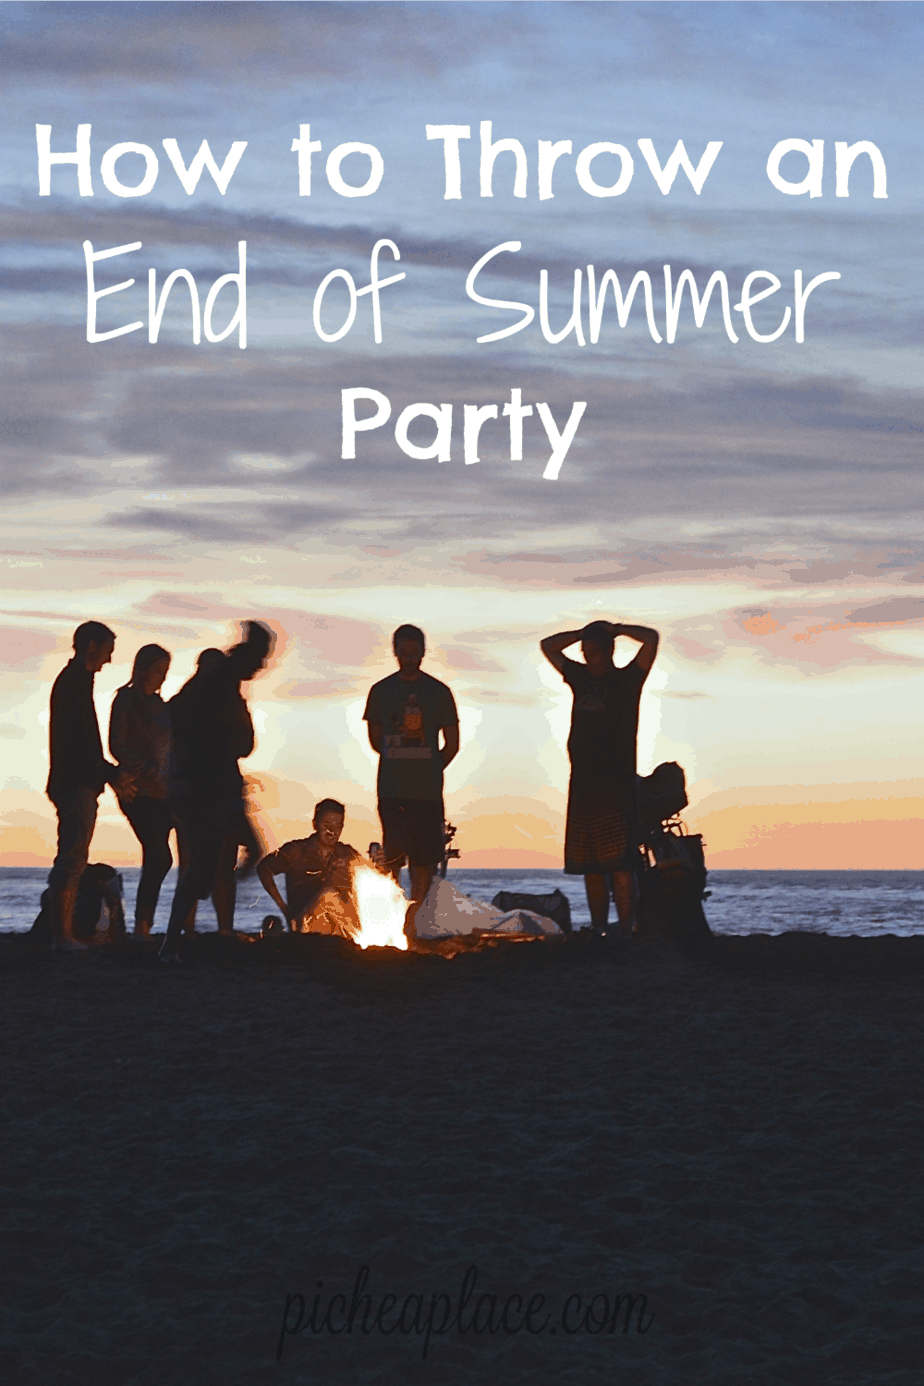 When the summer comes to an end, it means that returning to school is right around the corner. Celebrate the end of summer by throwing an end of summer party for your friends and family!